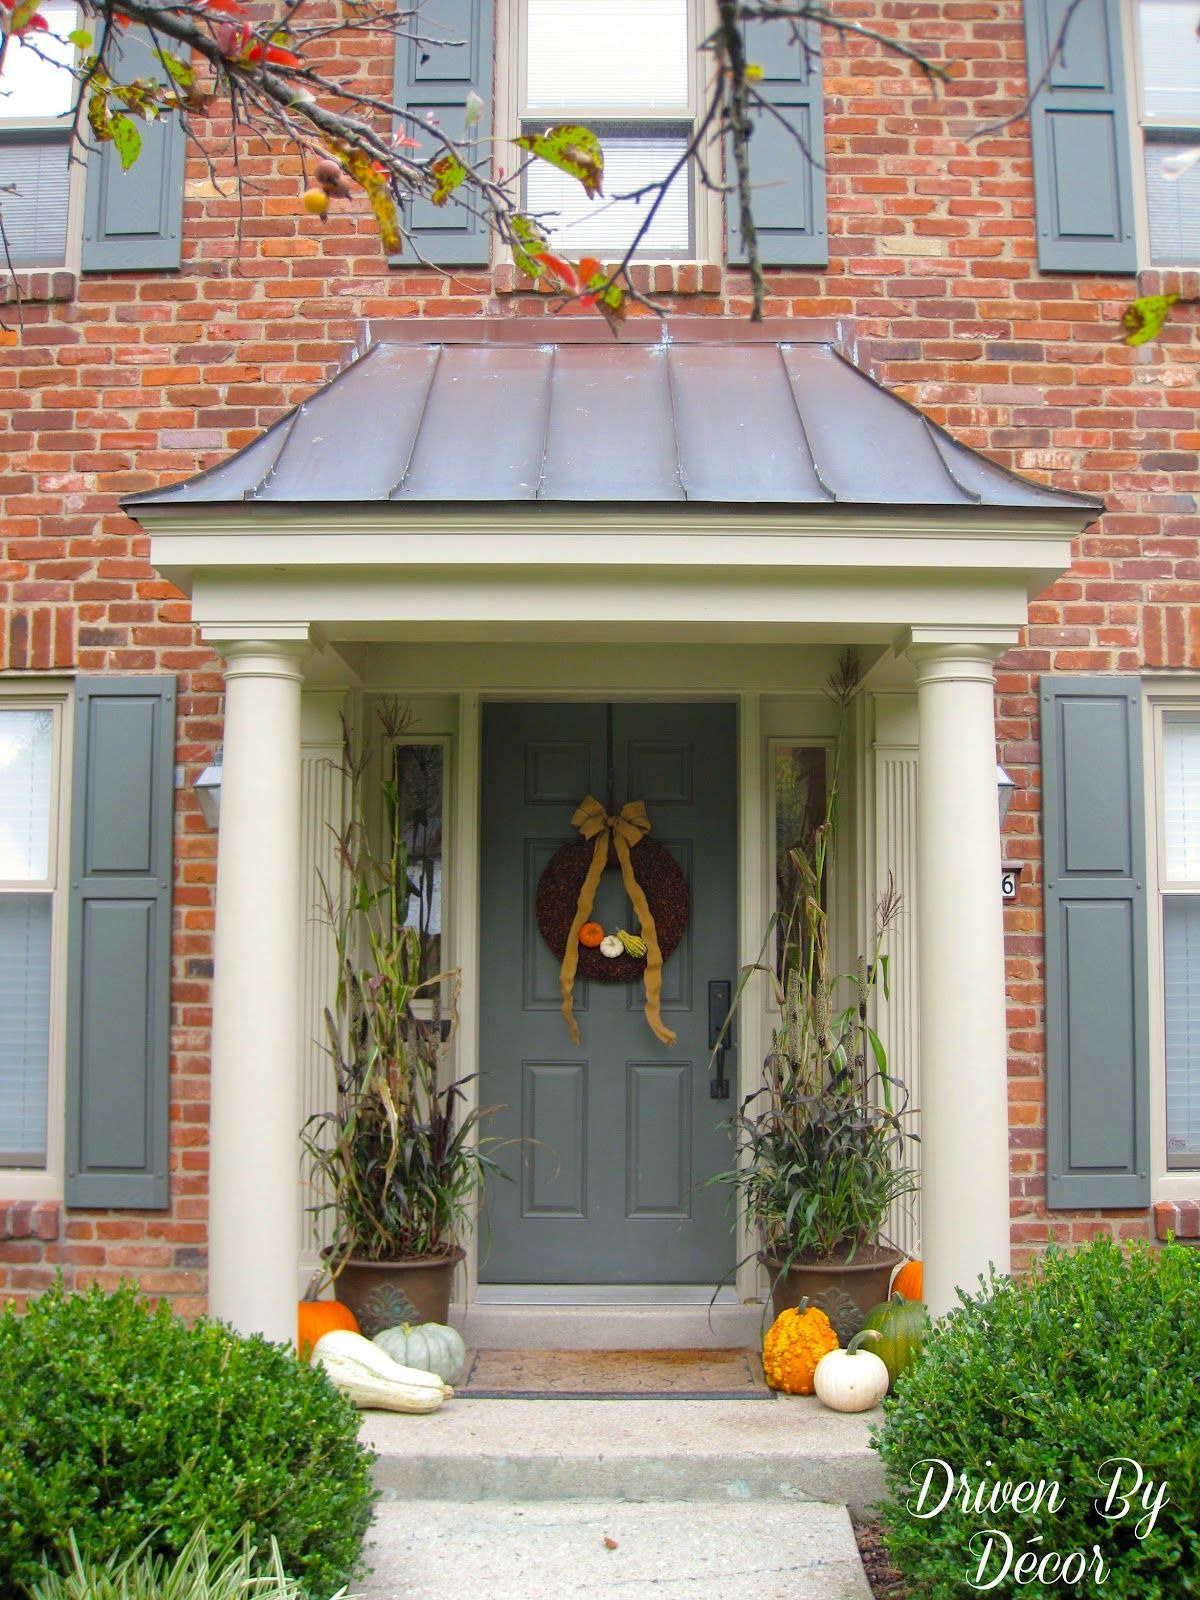 Front Entrance Roof Designs Inspirational Decorating My Front Porch for Fall